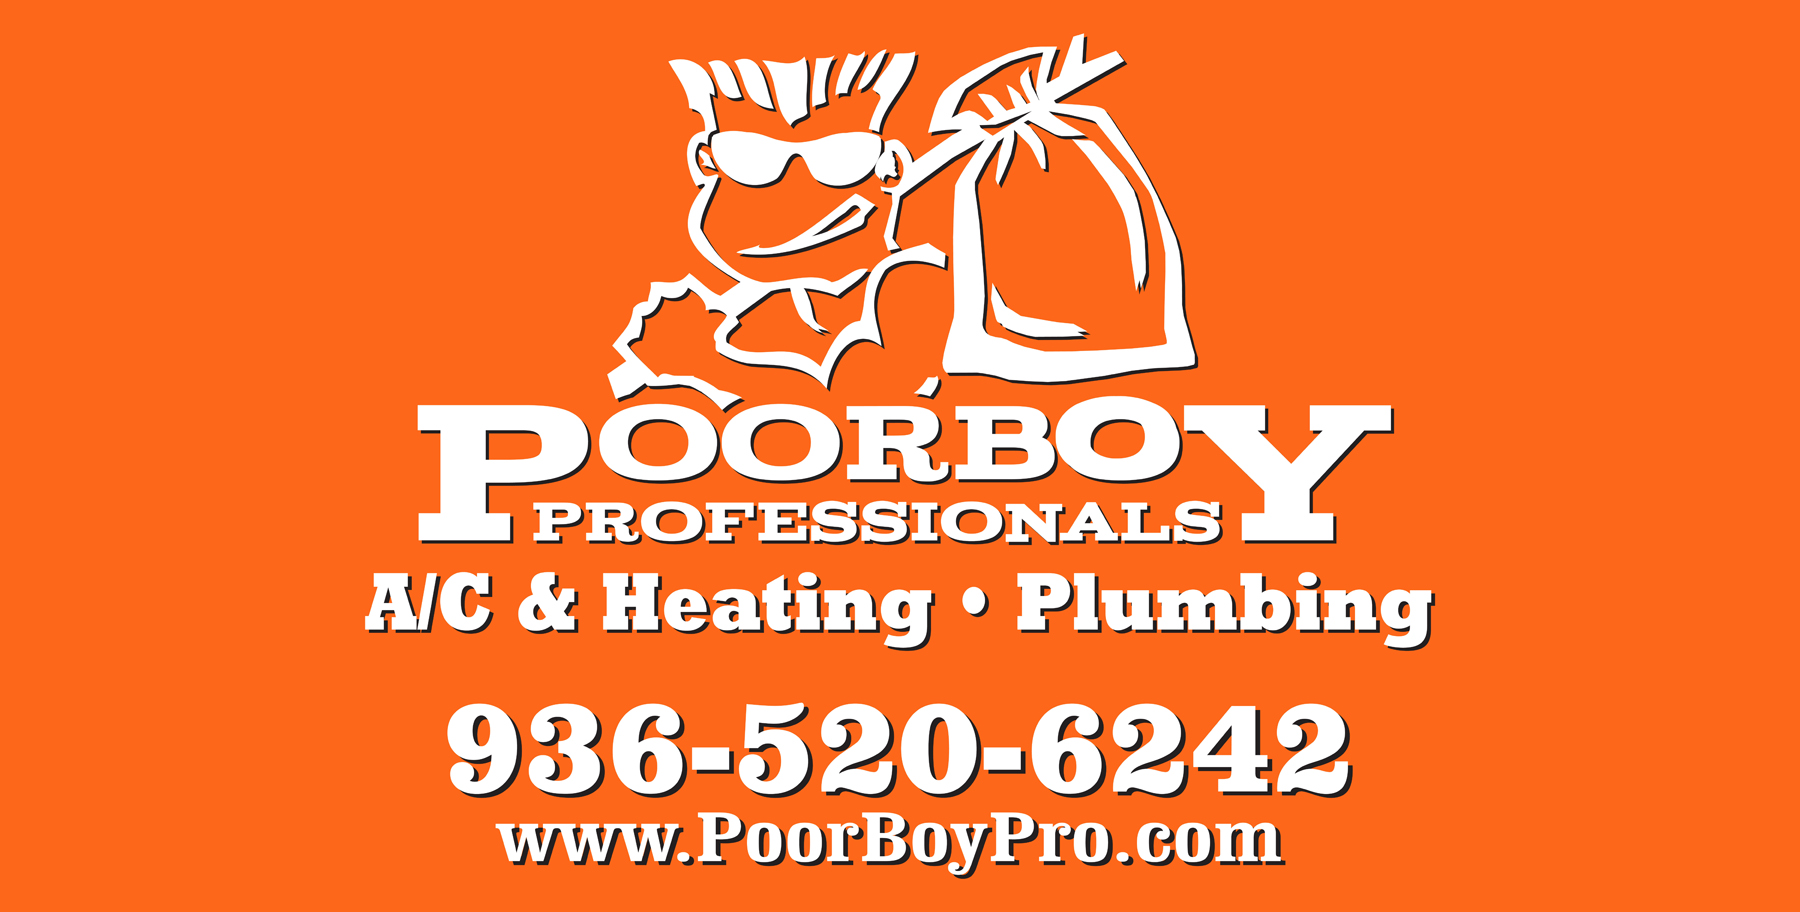 POORBOY Proffesionals A/C & Heating, Plumbing